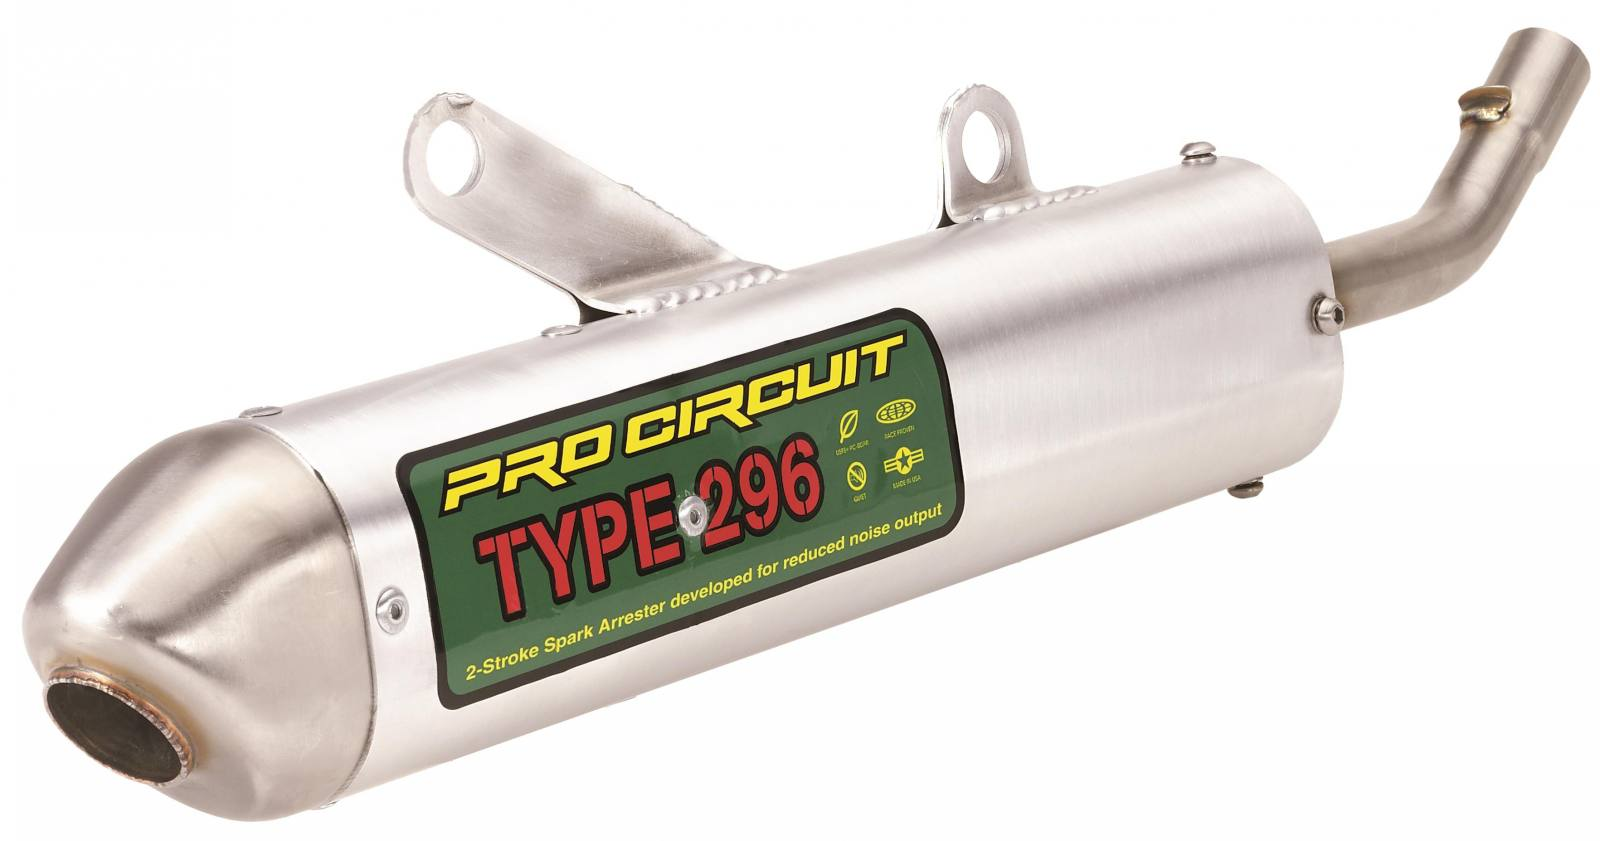 Type 296 Spark Arrester Silencer For Sale In Chico Ca Pro Circuit T4 Complete Exhaust System Motosport Motorsports 800 356 4735